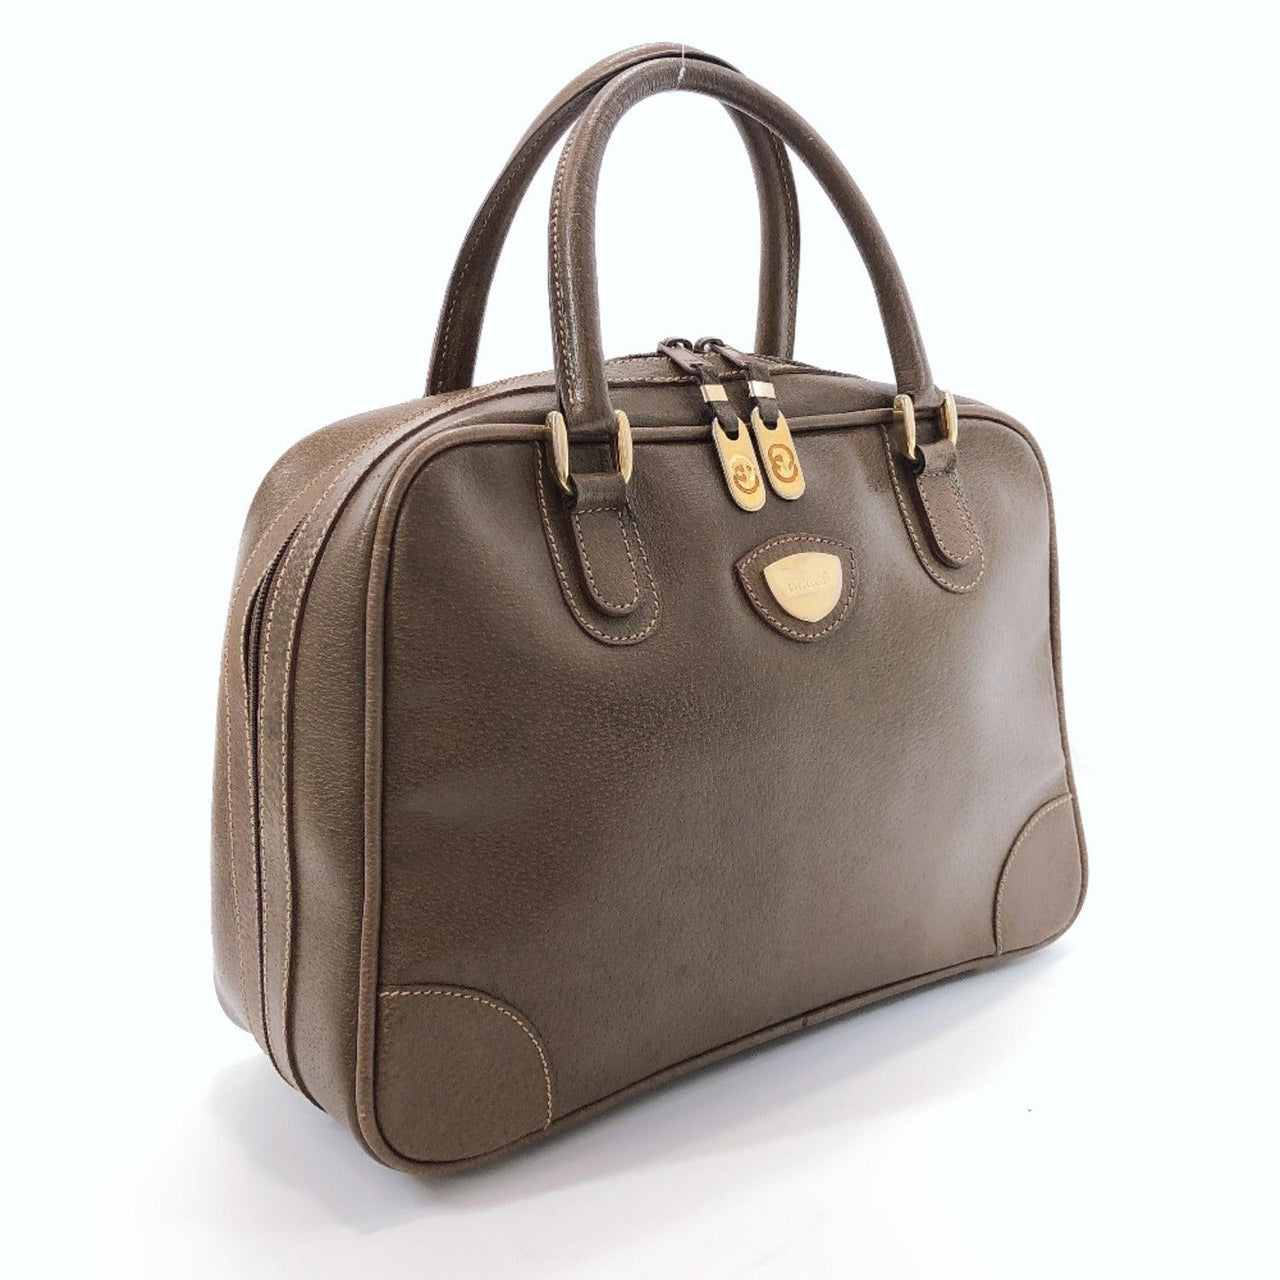 GUCCI Handbag vintage leather Brown Women Used